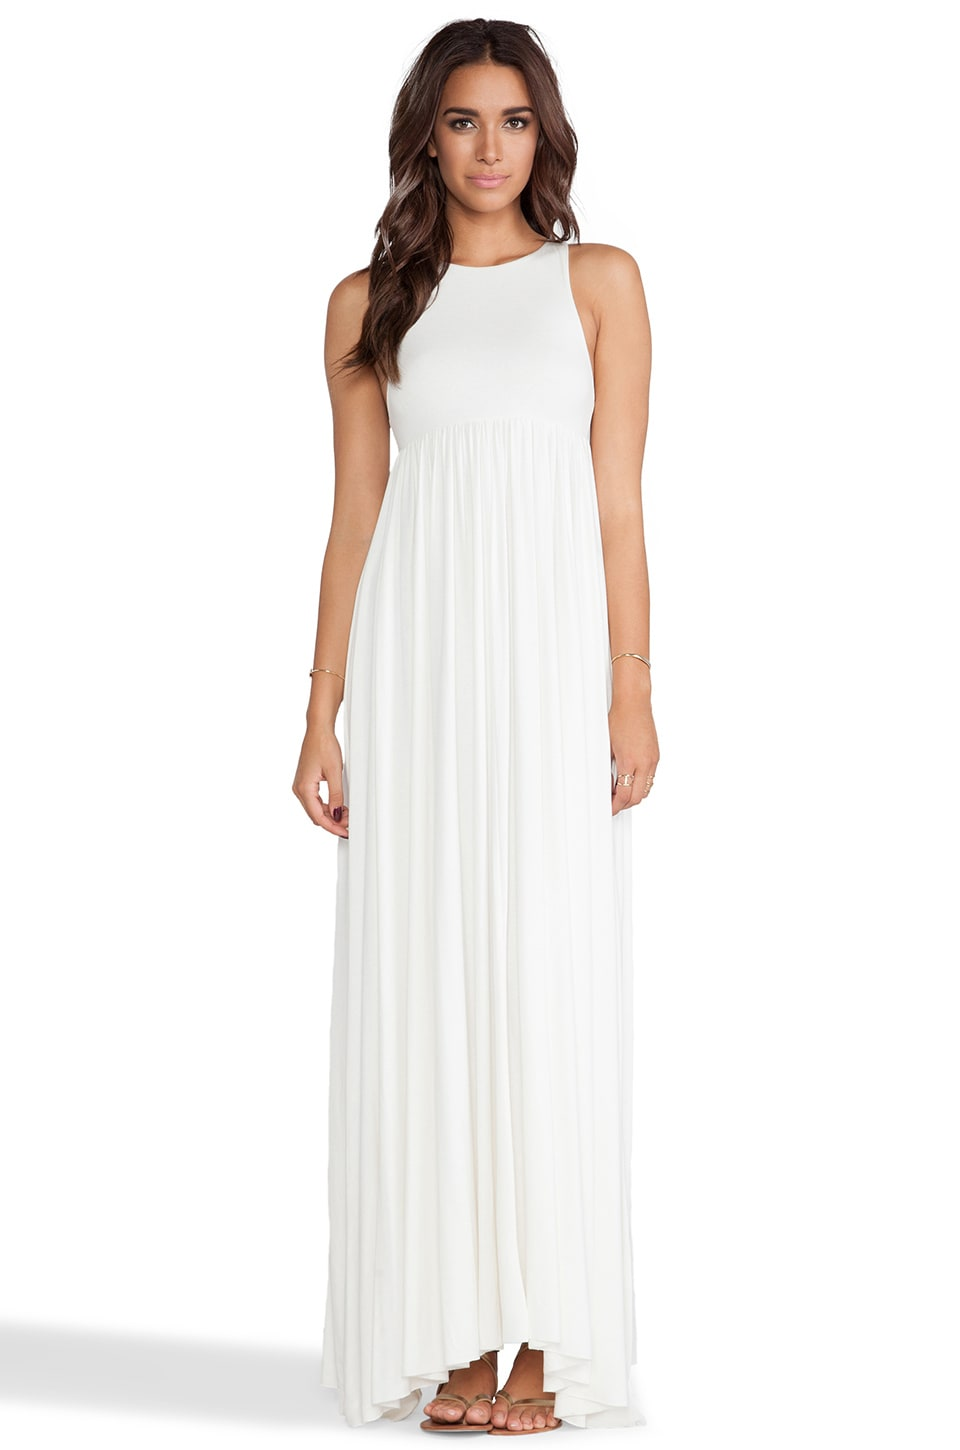 Rachel Pally Anya Tank Maxi Dress in White